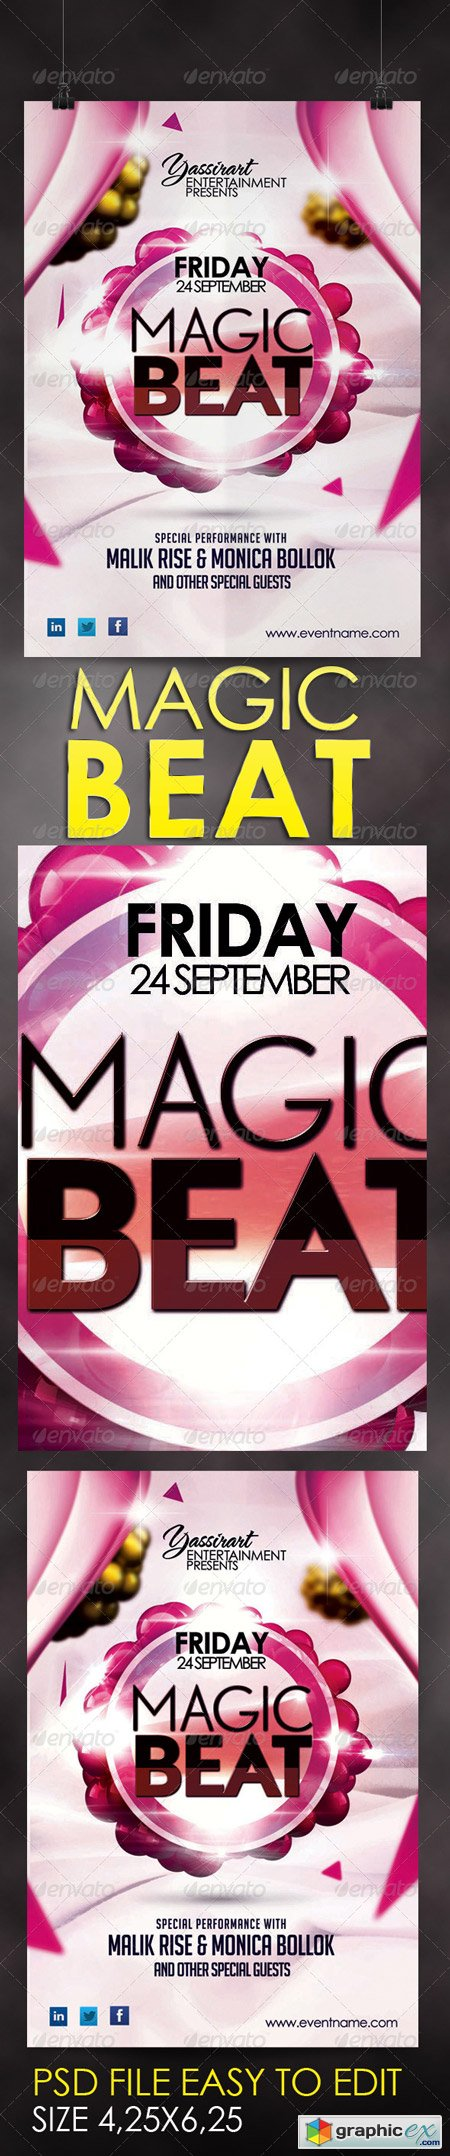 Magic Beat Flyer Template